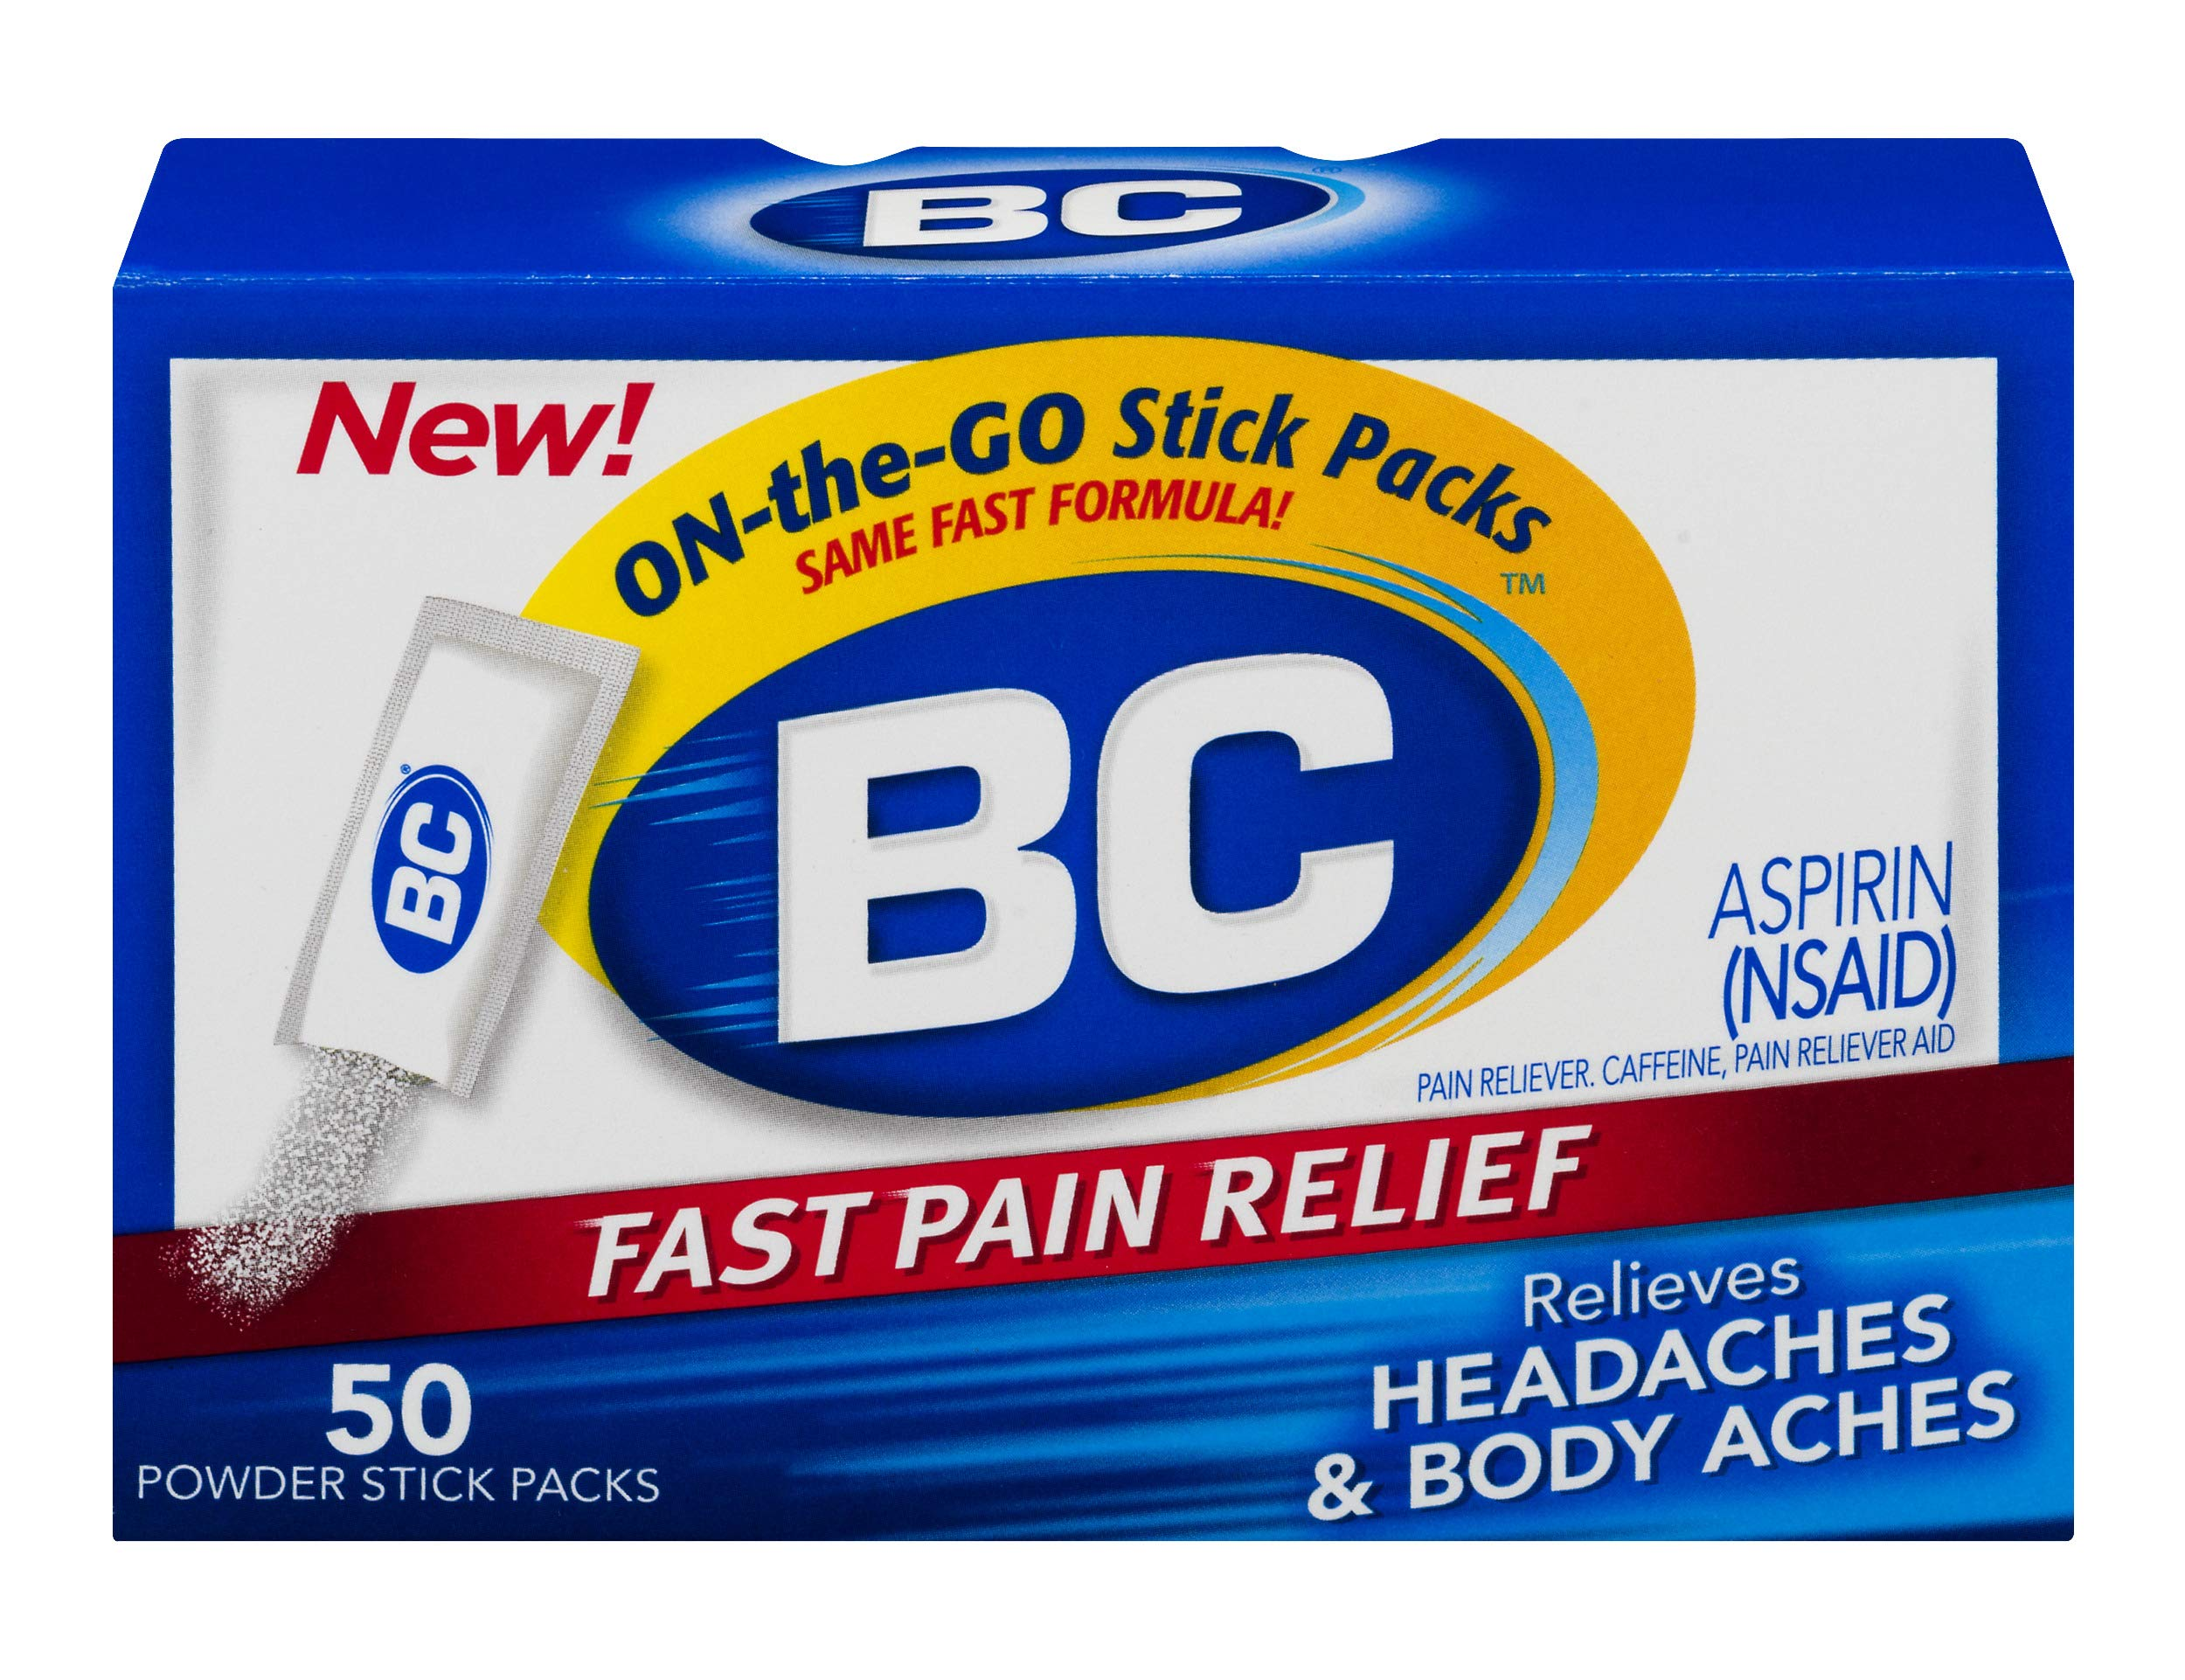 BC Powder | Fast Pain Relief | Aspirin (NSAID) & Caffeine | 50 Count | 6 Pack by BC